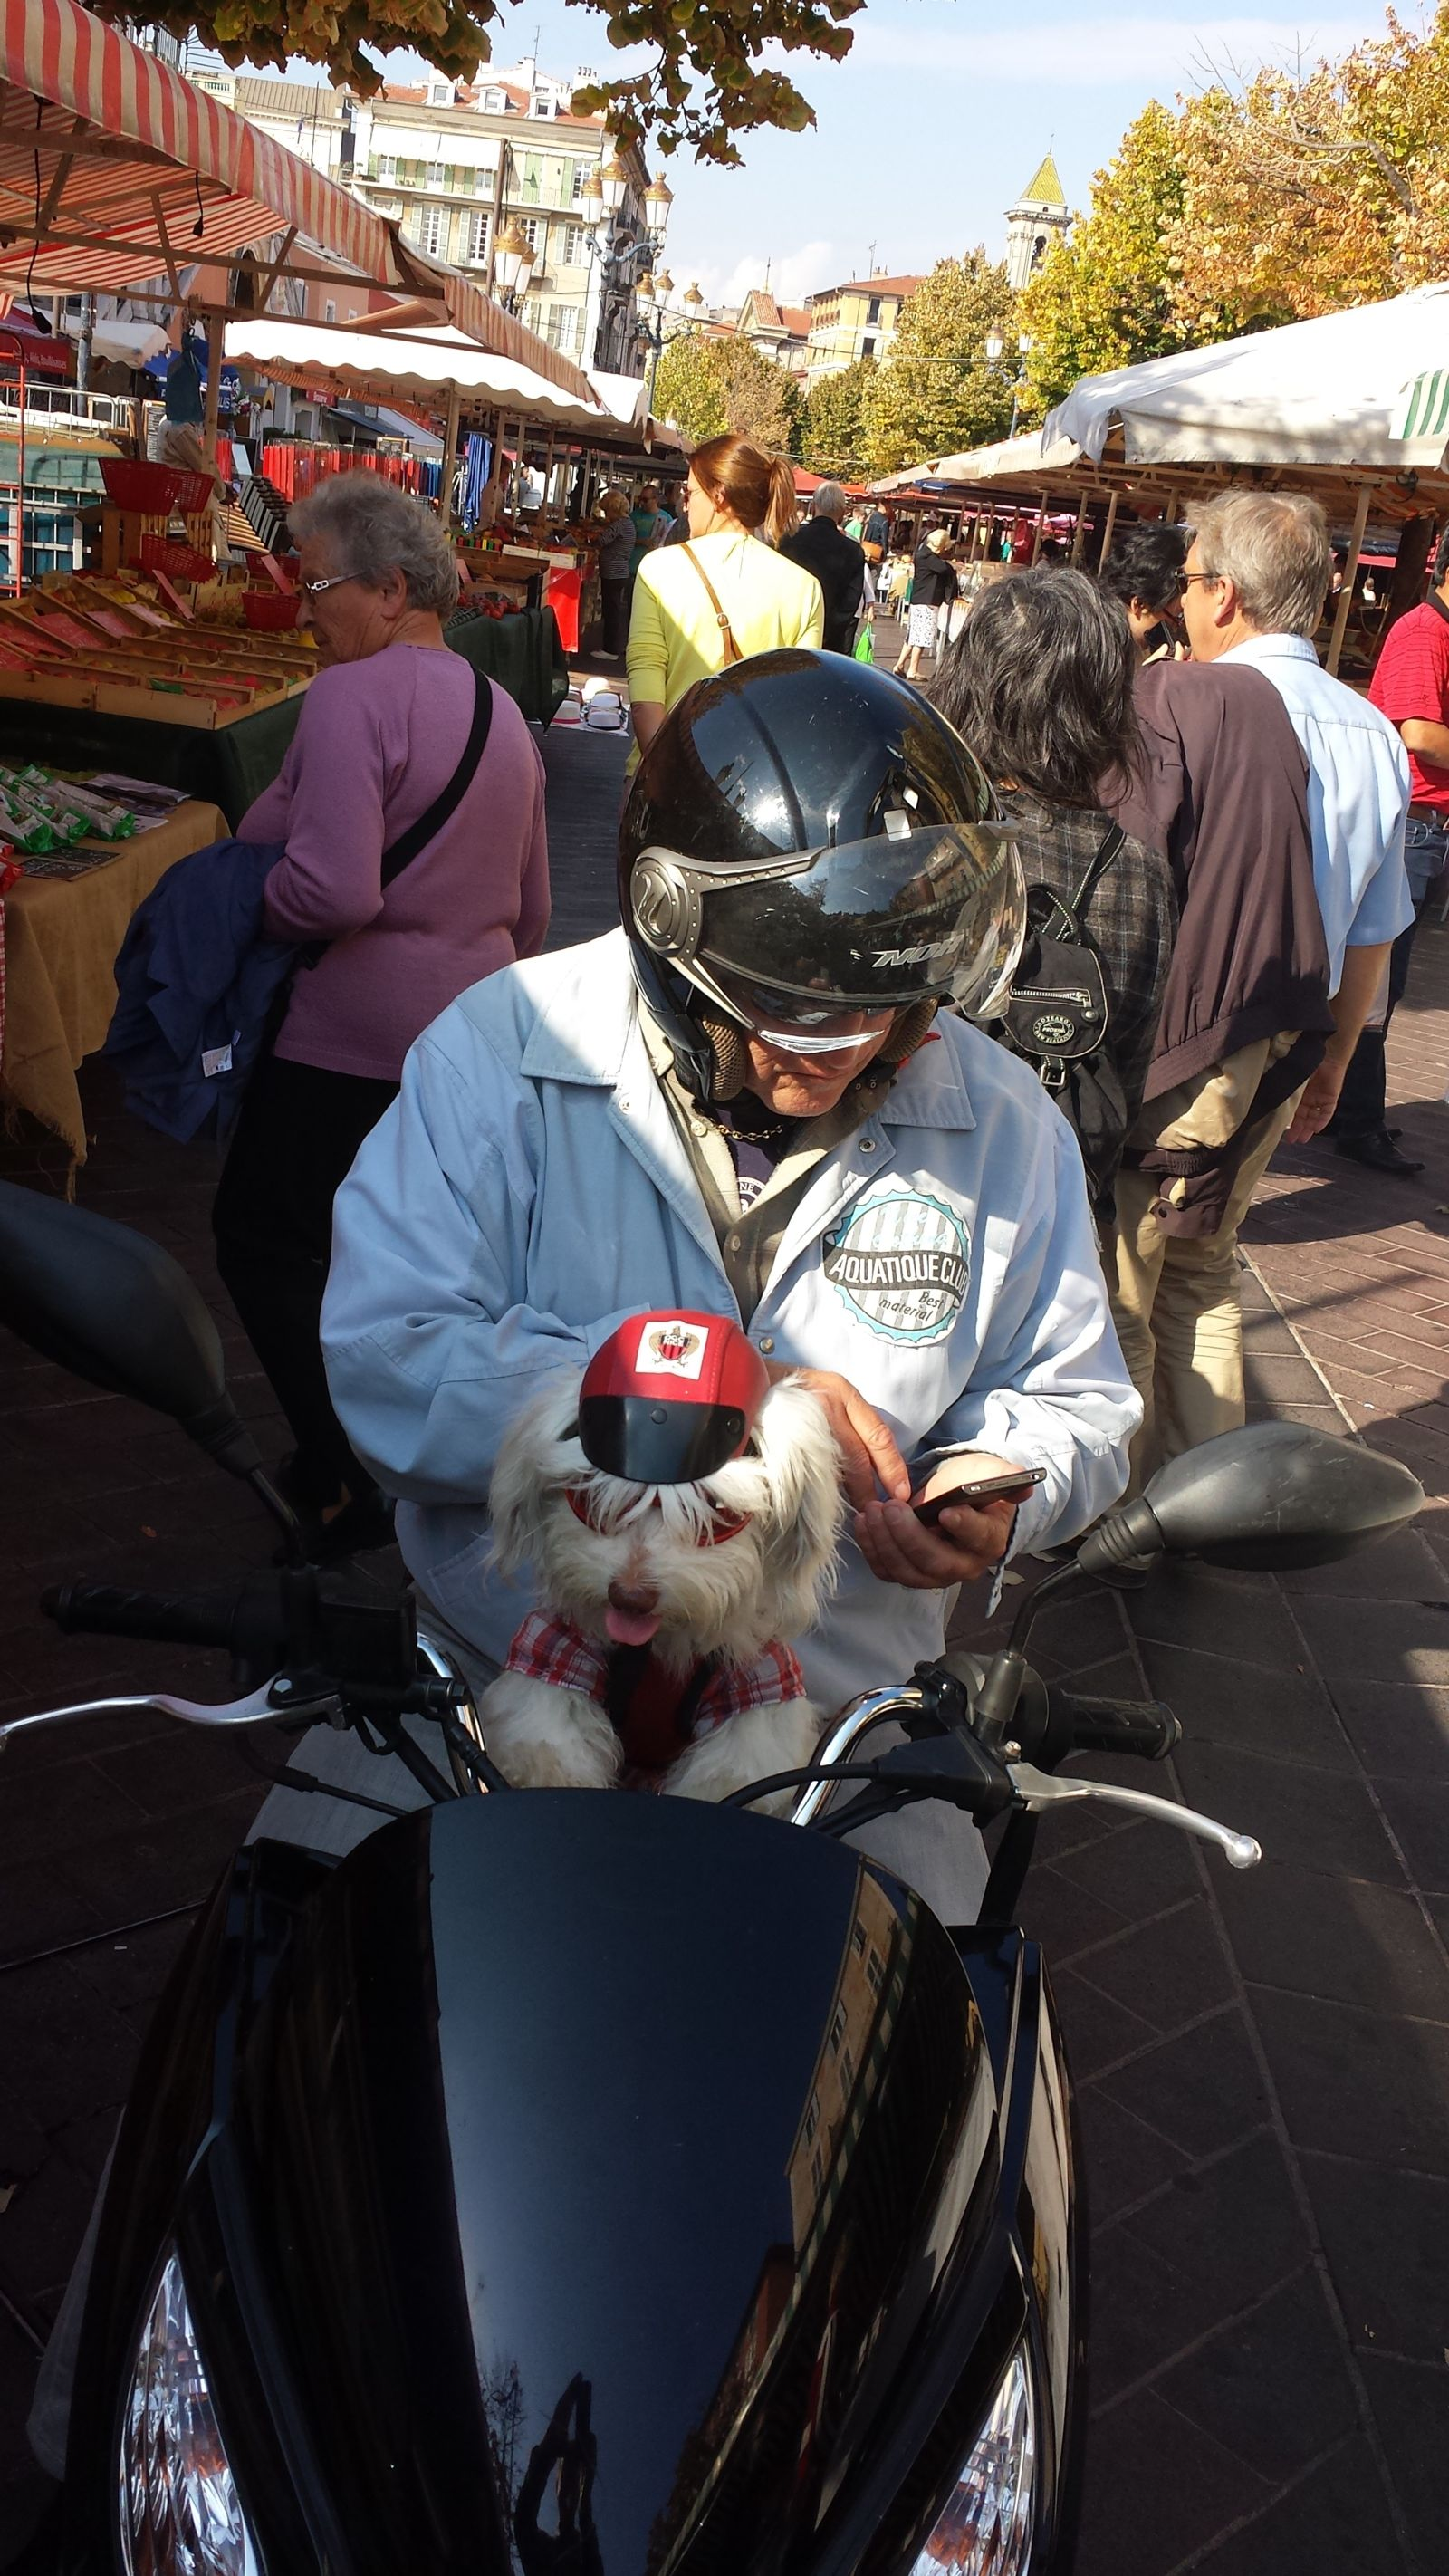 man on motorcycle with small white dog